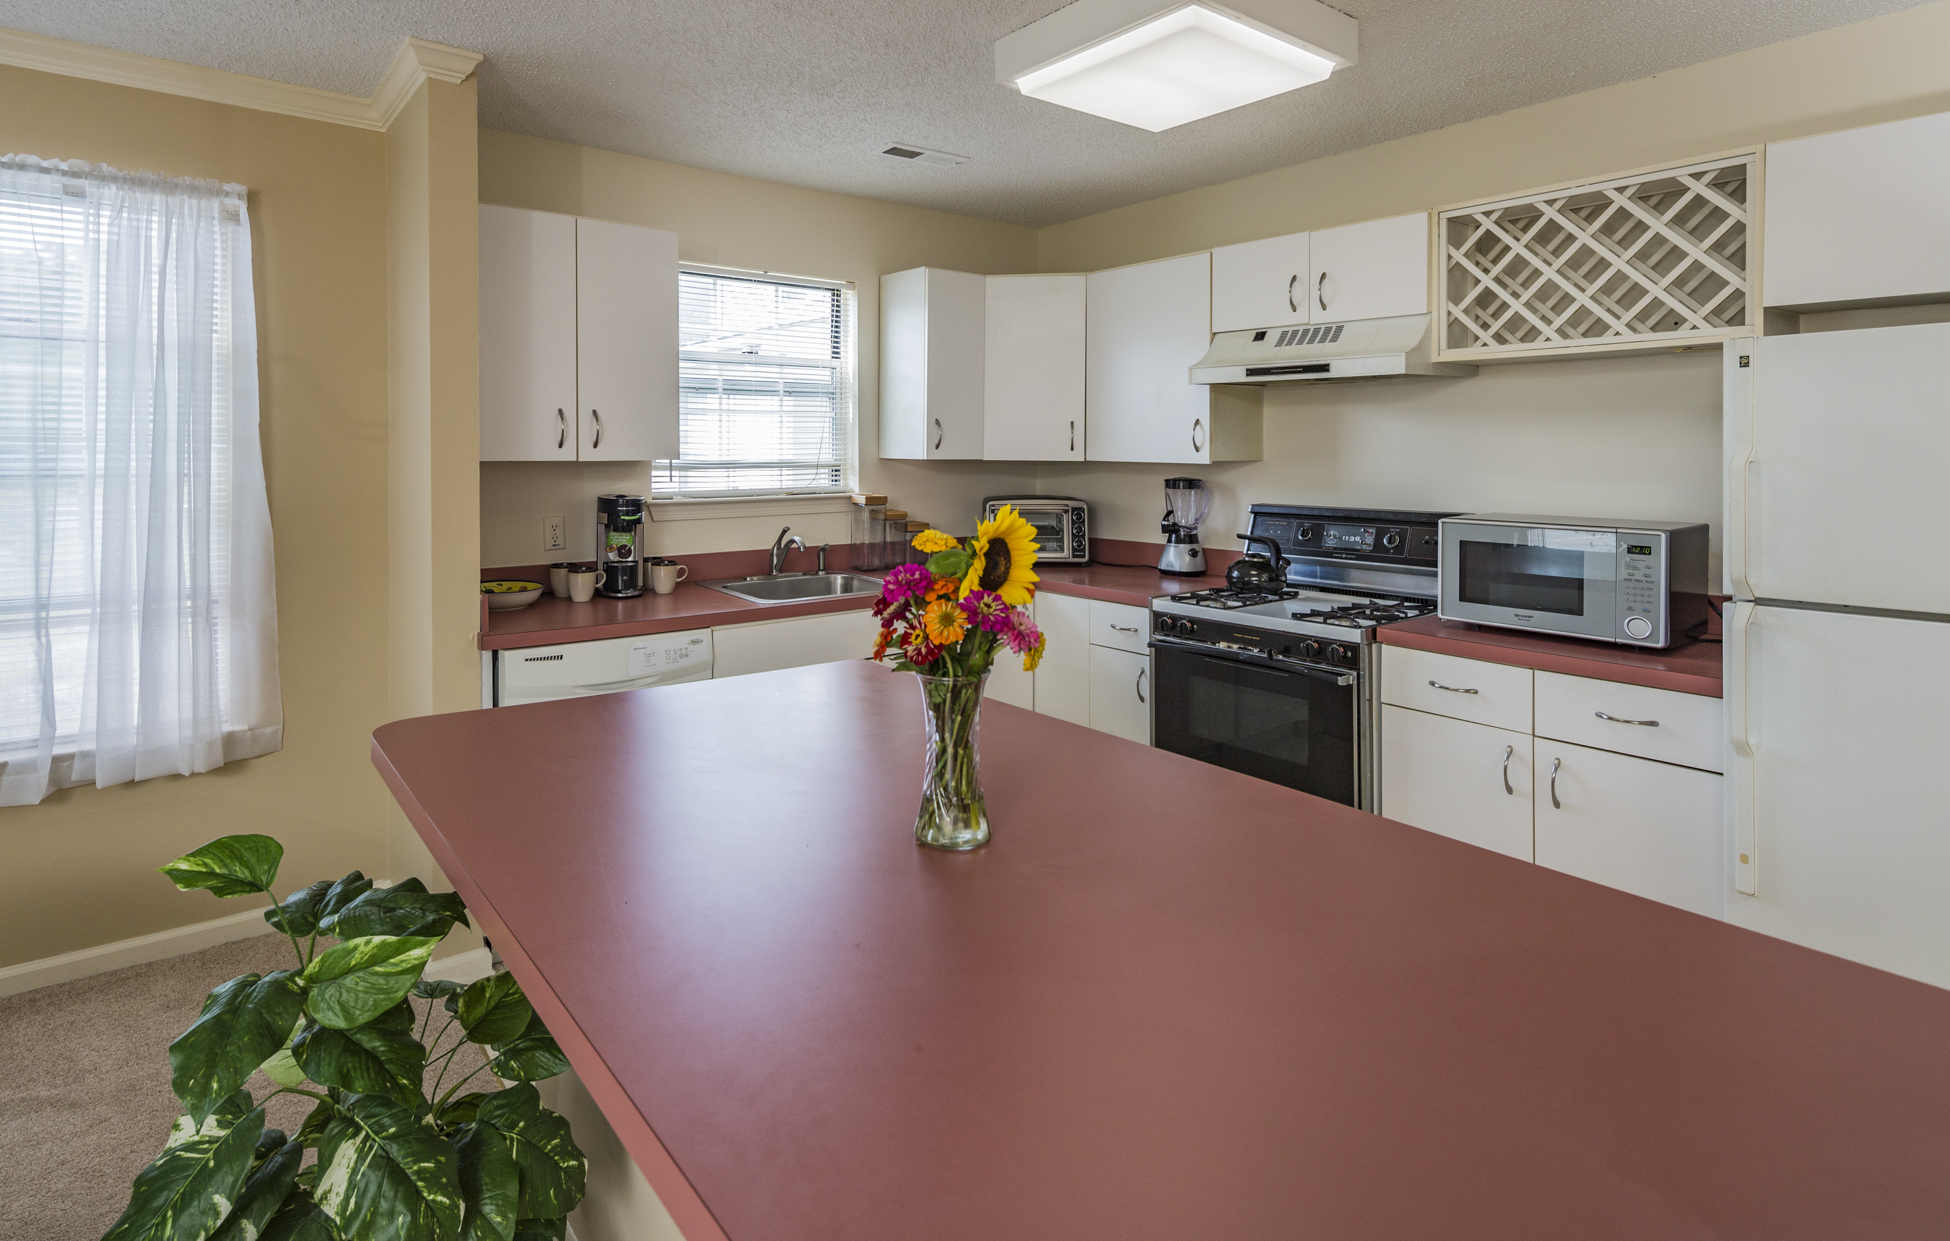 Additional photo for property listing at Effortless, One-Level Living in Eagles Chase - Lawrence Township 816 Roundtree Place Lawrenceville, Нью-Джерси 08648 Соединенные Штаты